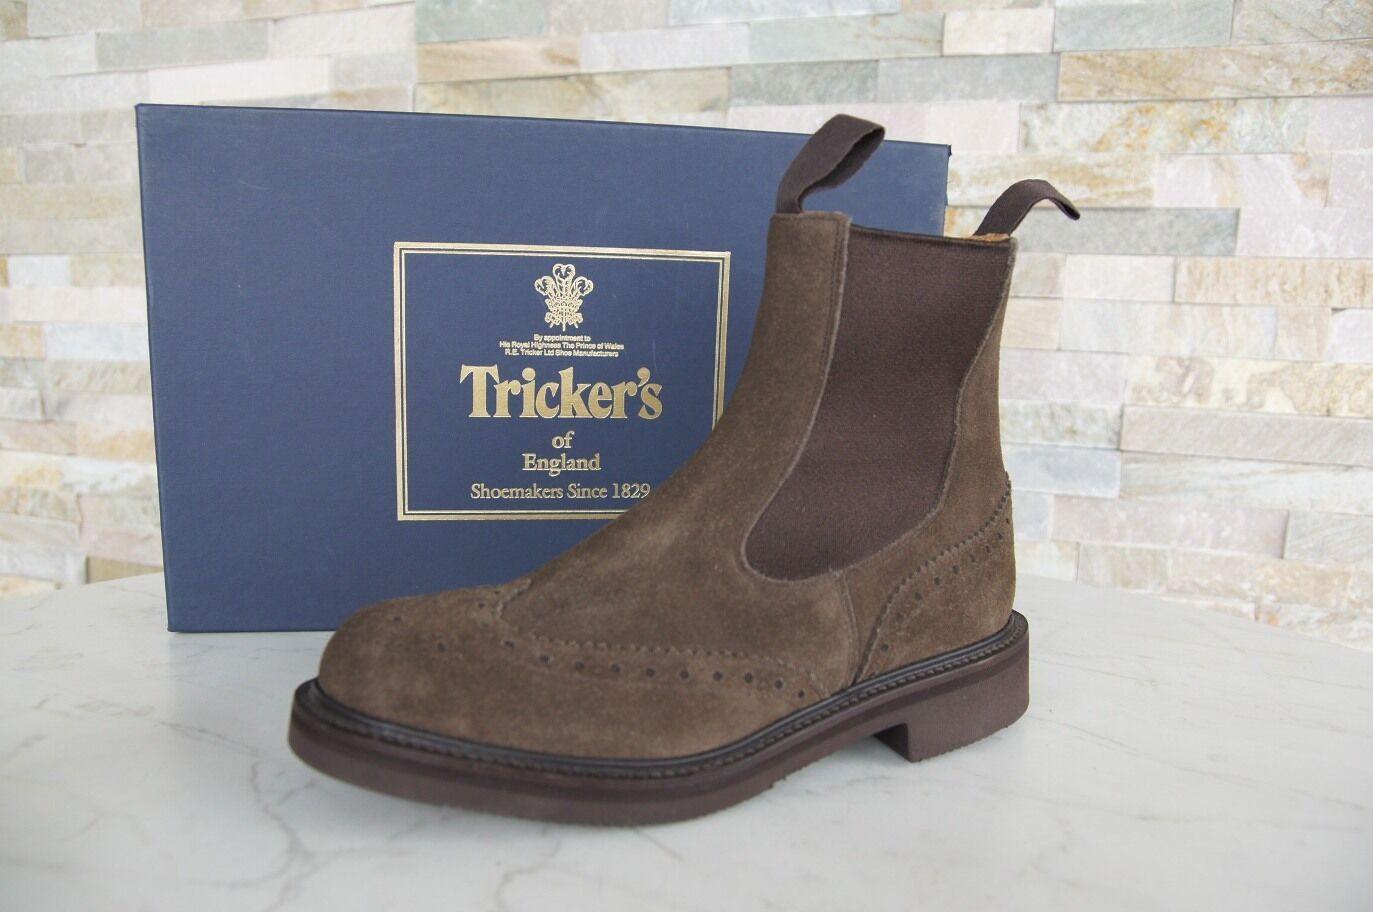 Tricker's Boots Sz. 3,5 36,5 Chelsea Boots shoes Flint New Previously